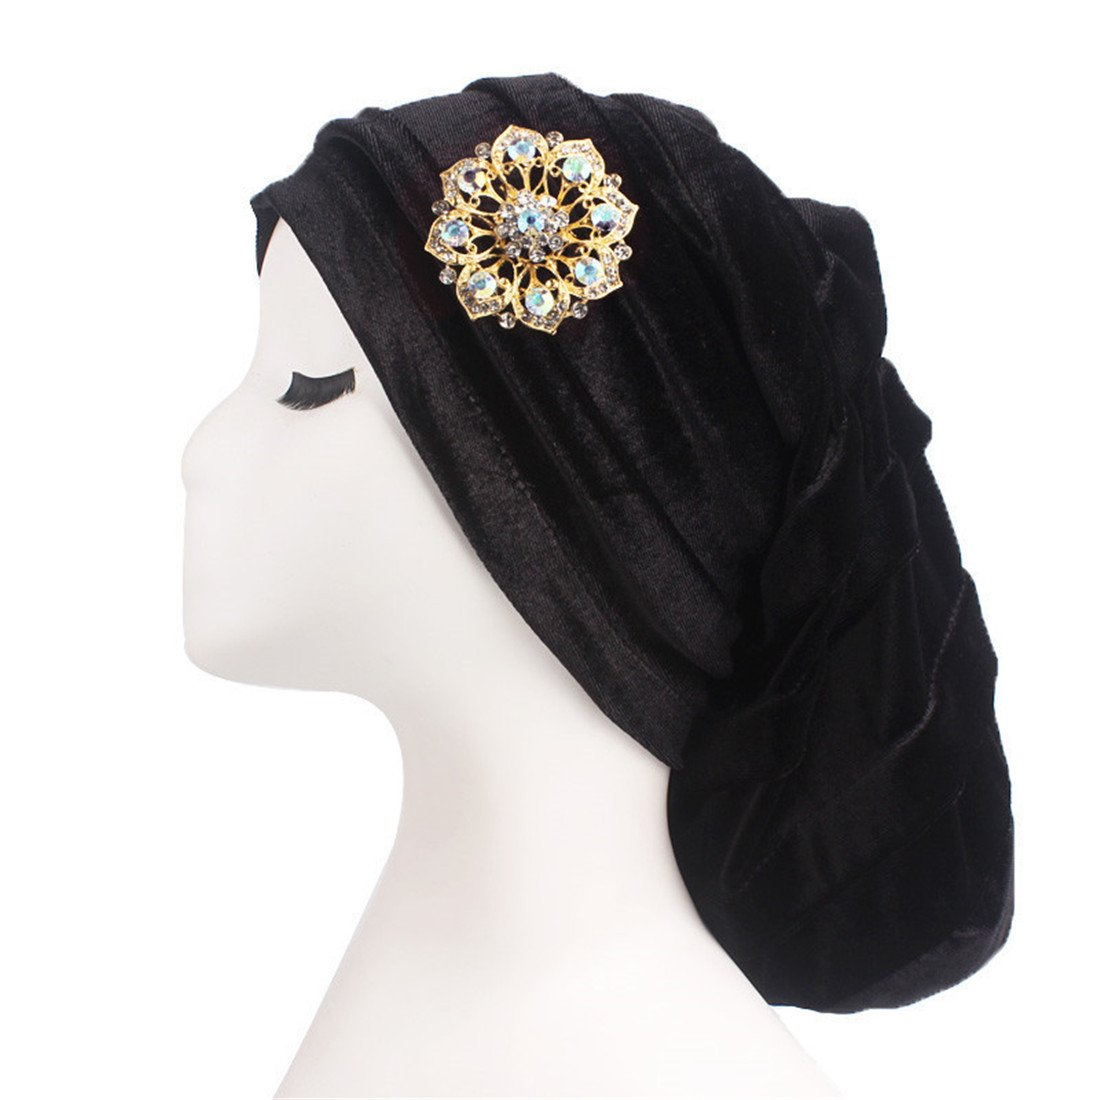 Qhome Women Pleated Velvet Turban with Metal Brooch Long Baggy Chemo Cap Sleeping Hat Hijab Headwrap Slouch Caps